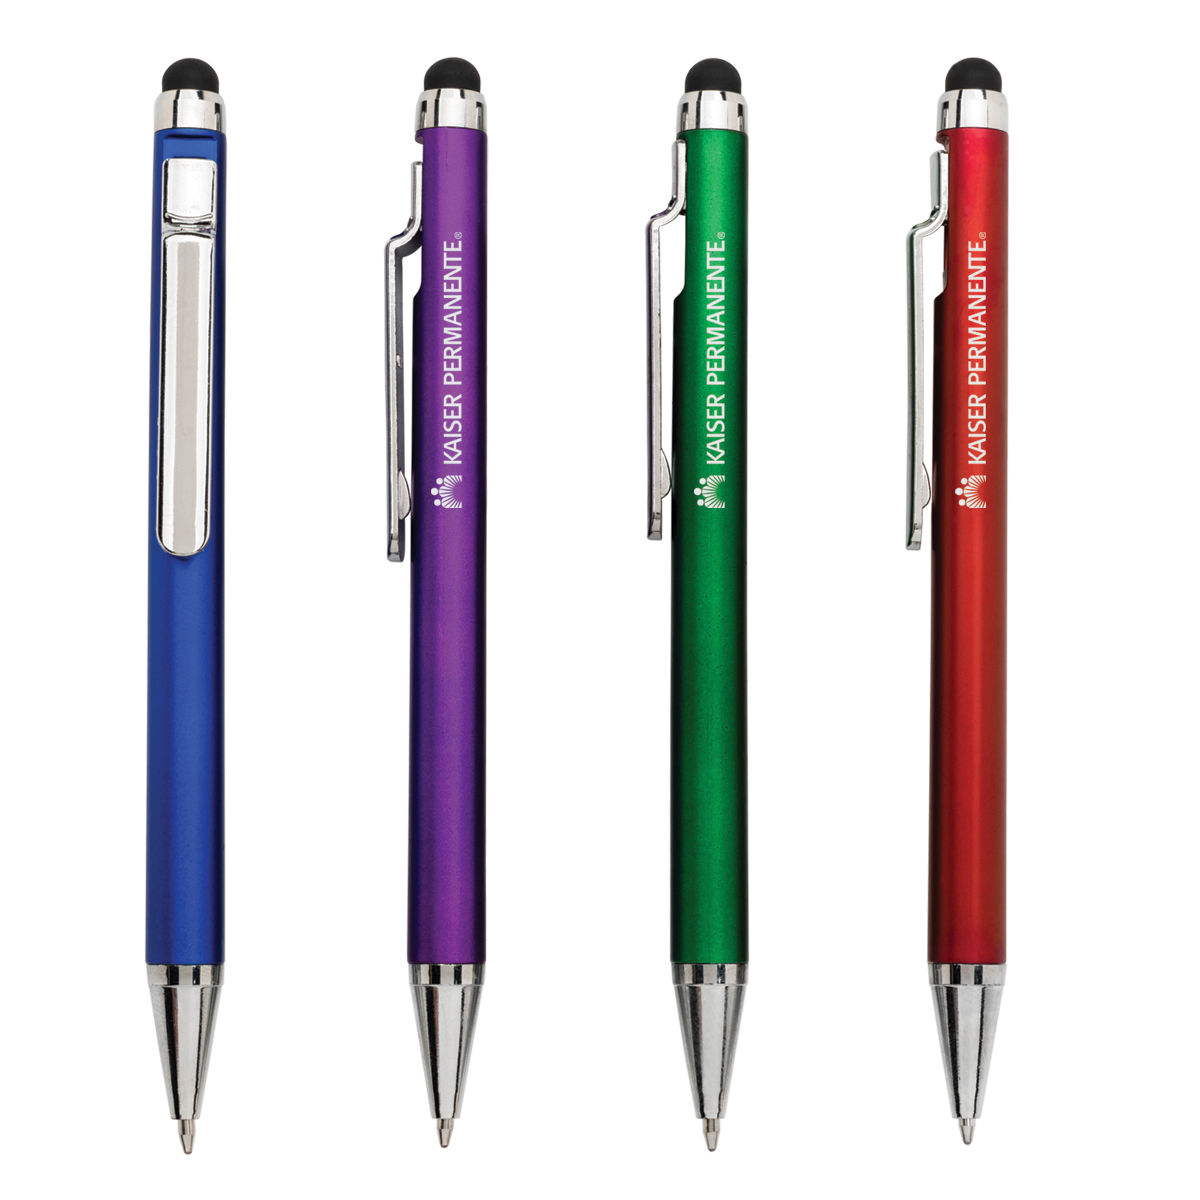 AVERY BALLPOINT PEN WITH STYLUS